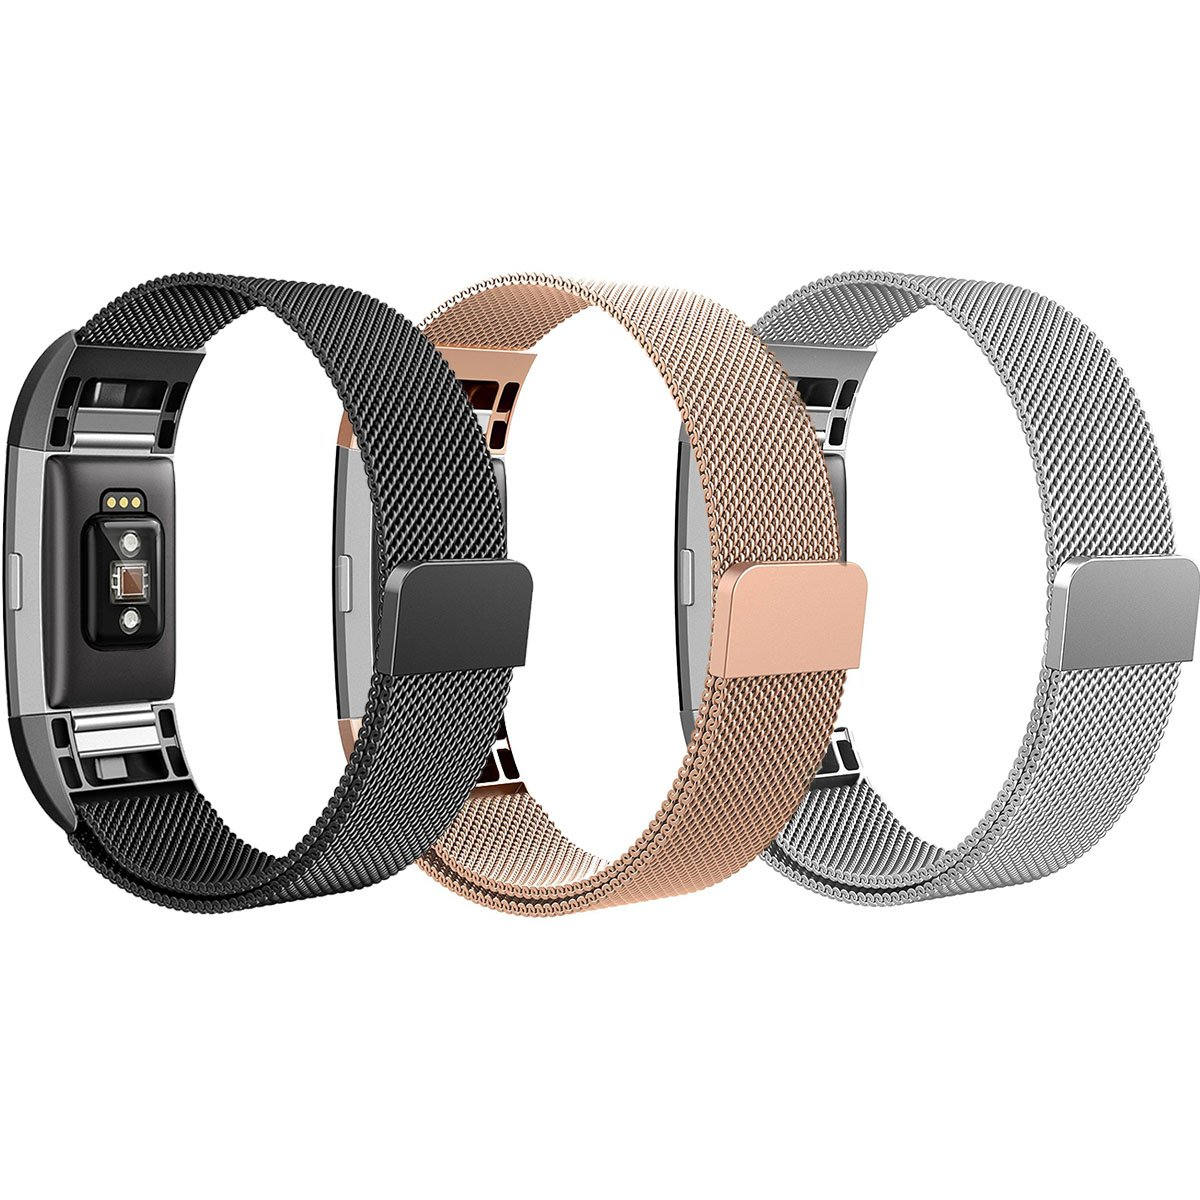 Fitbit Charge 2 Bands, SailFar 3 Pack Magnetic Clasp Mesh Loop Milanese Stainless Steel Metal Bracelet Strap/Watch Band for Fitbit Charge 2,Small, Men/Women, Gold, Silver, Black